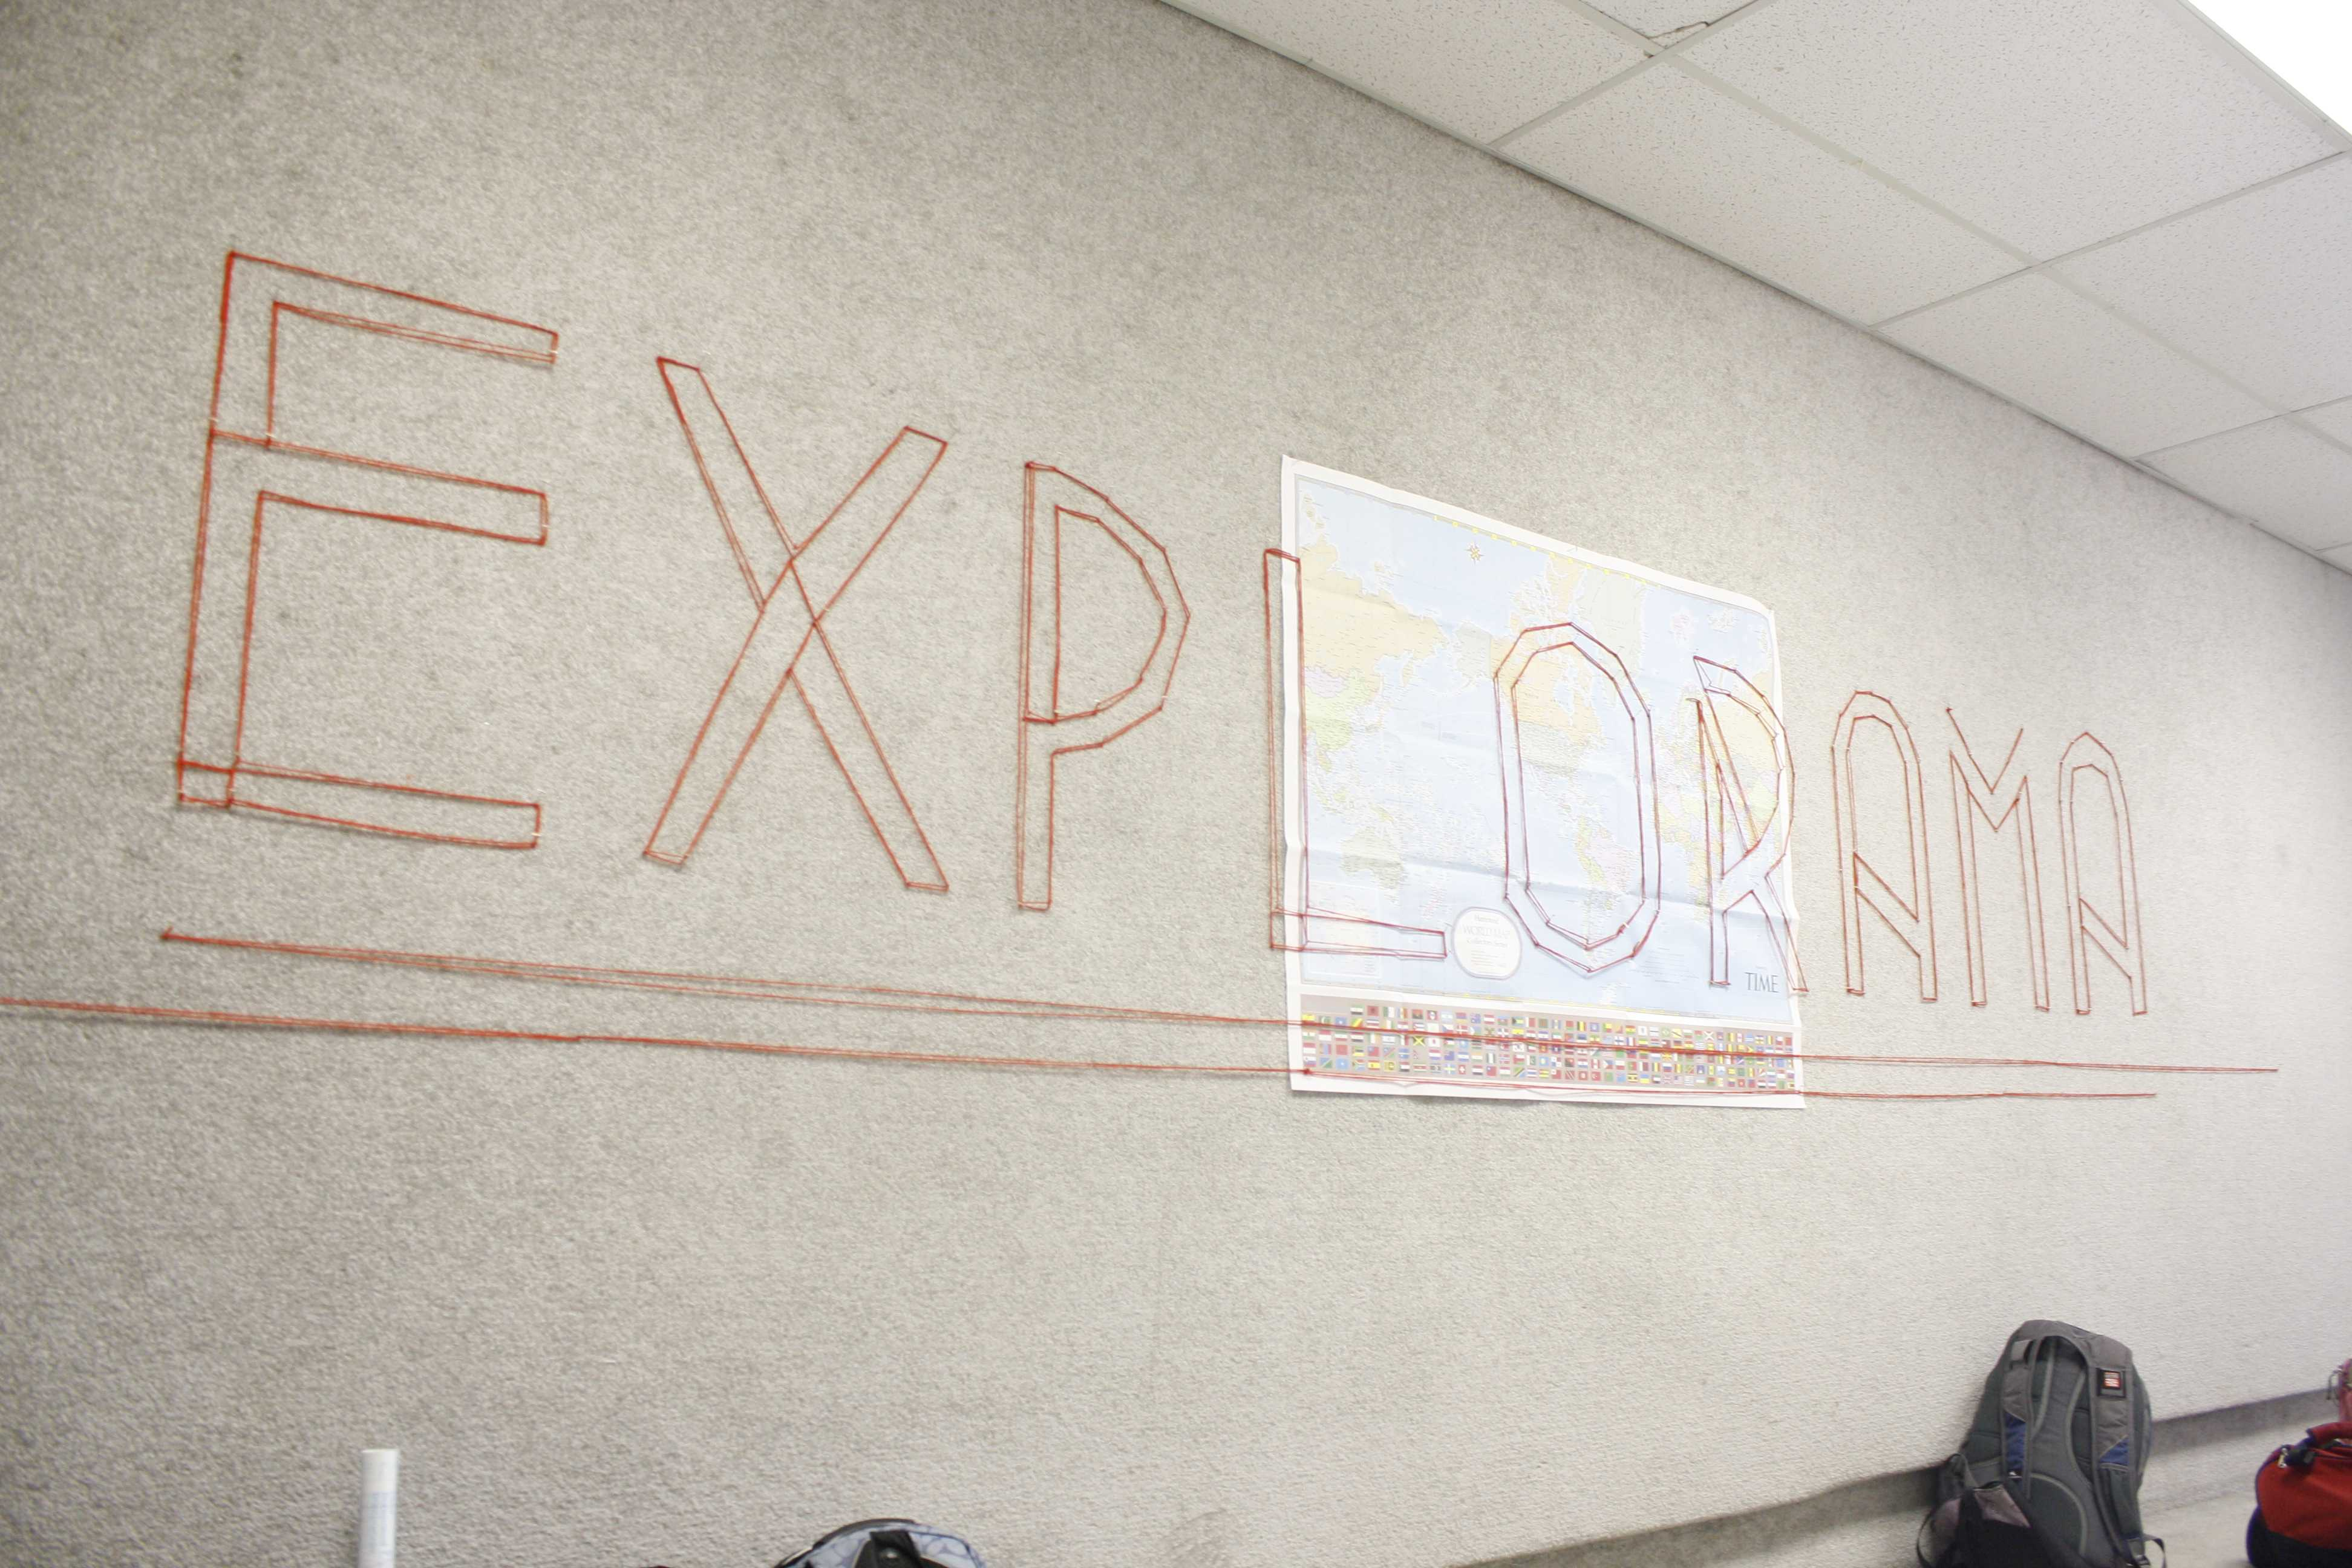 This design of the theme was set up in the hallway leading to the exhibit.